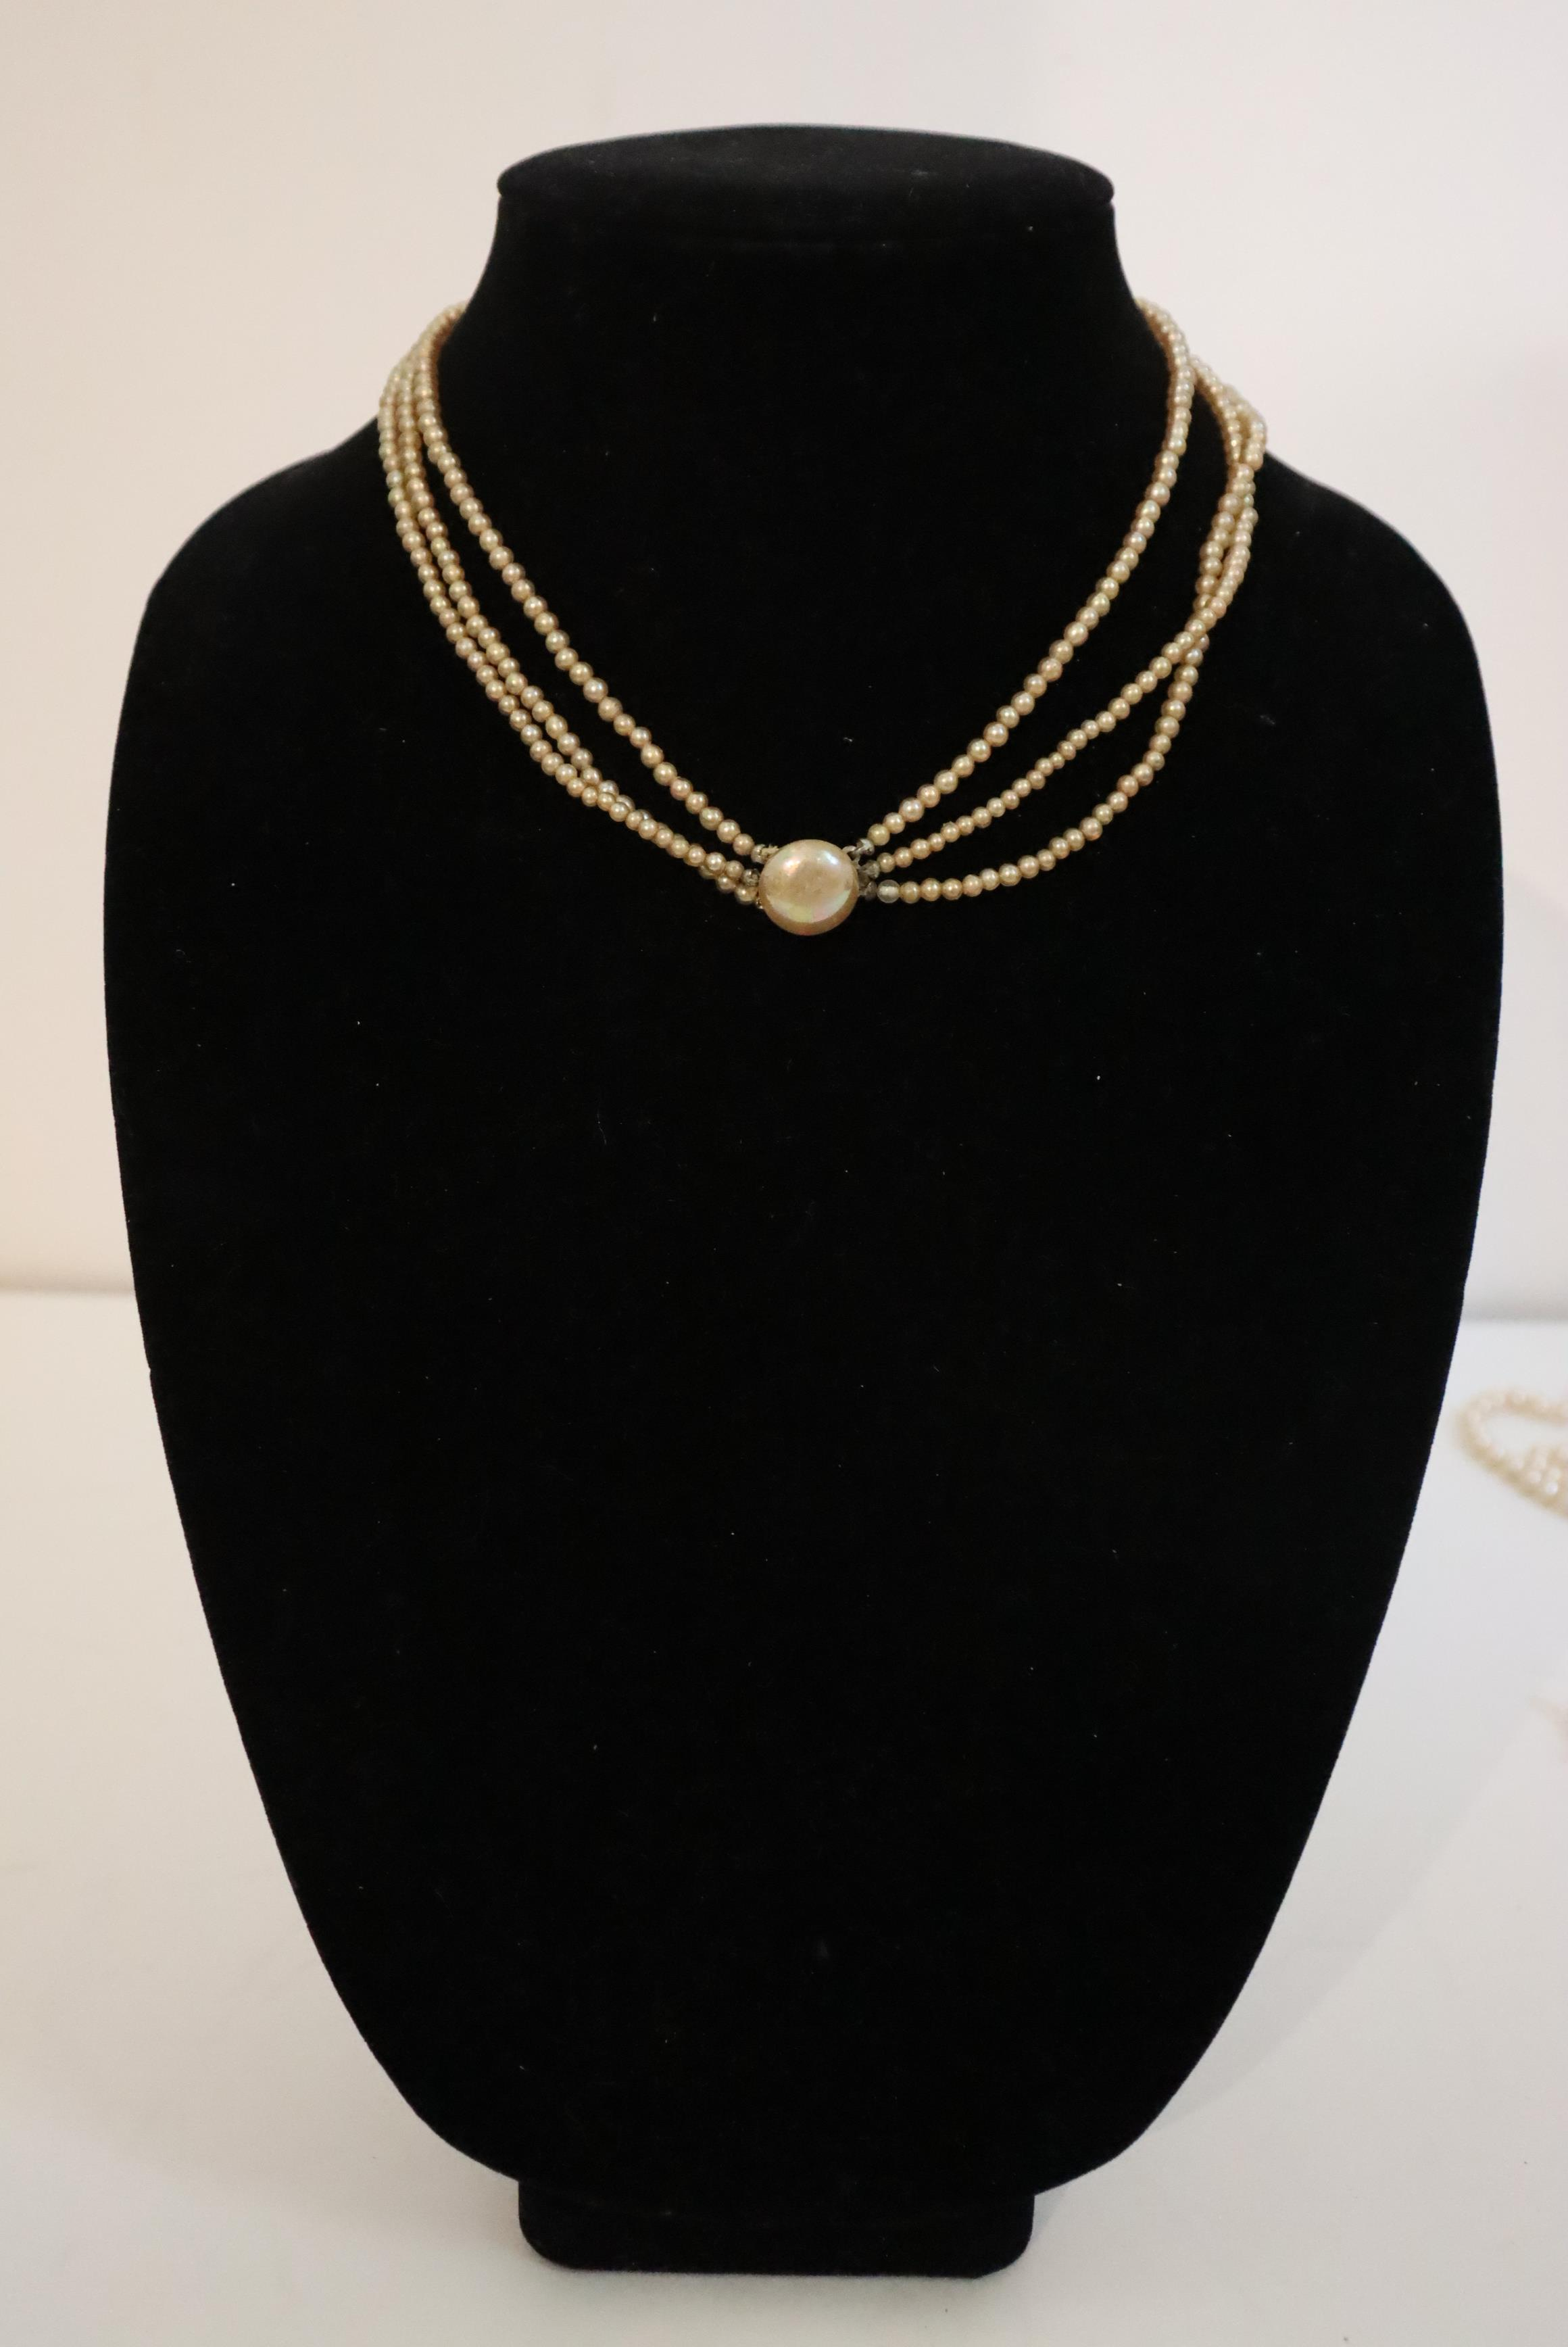 Large Collection of (10) Pearl / Beaded Necklaces - Image 8 of 20